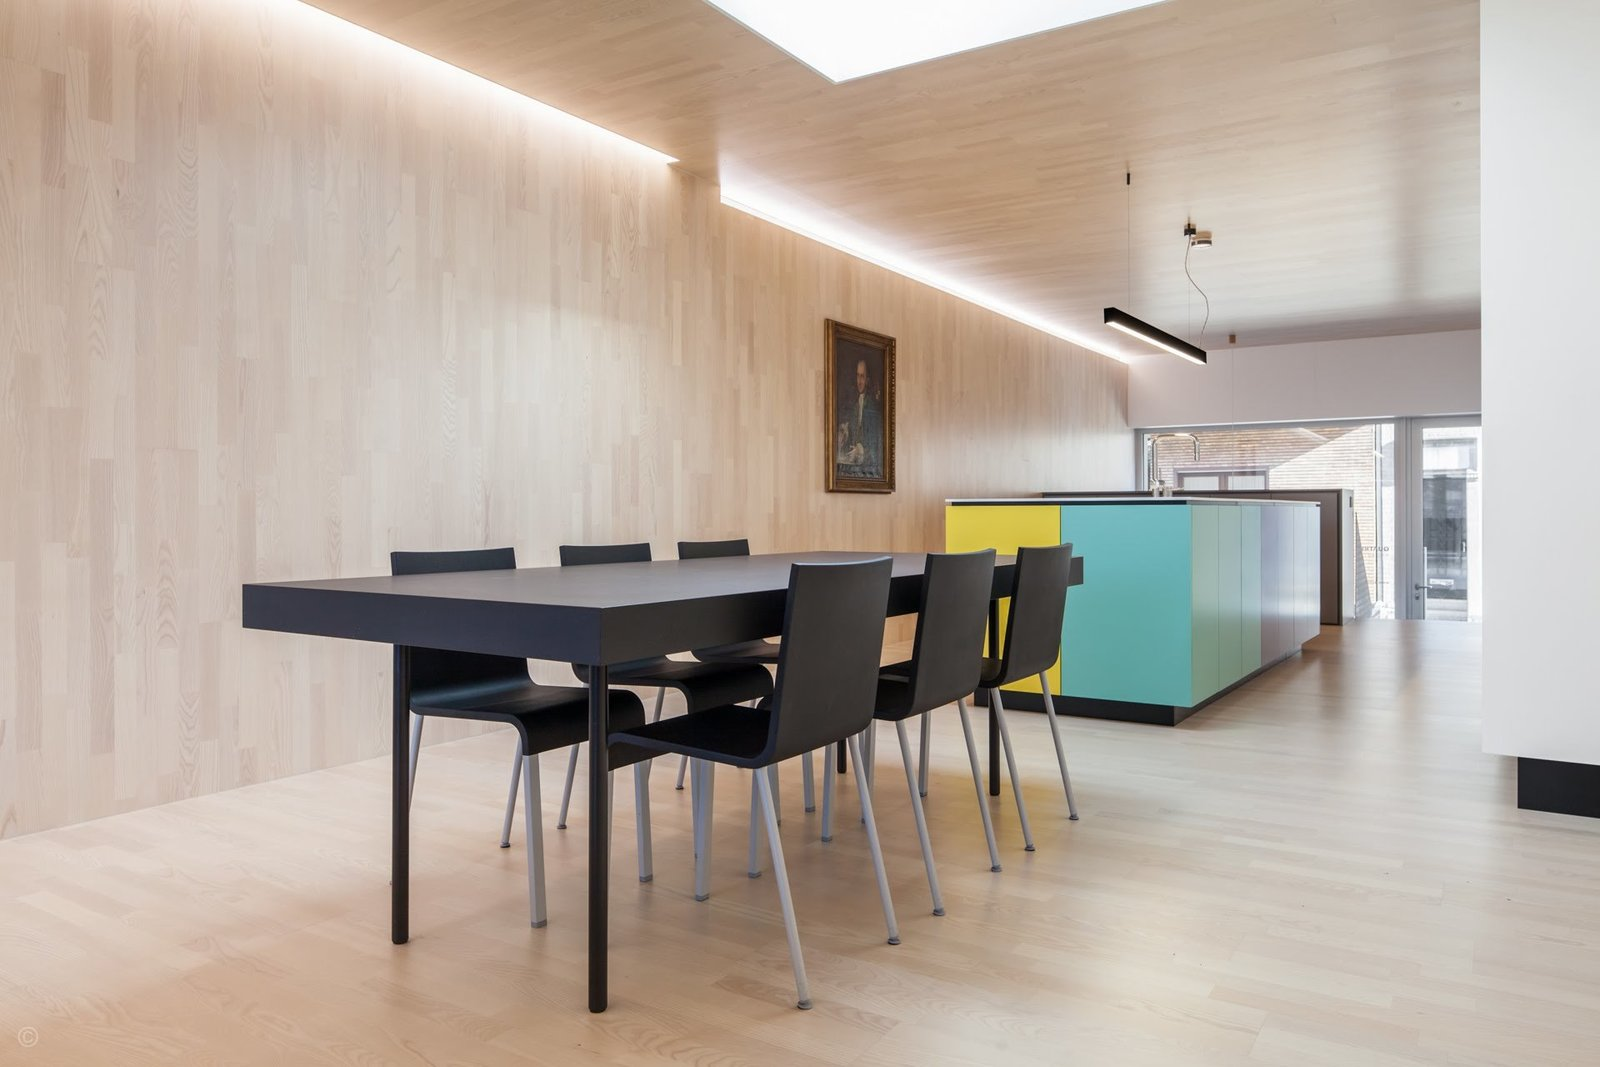 Dining Room, Table, Chair, Recessed Lighting, Pendant Lighting, and Light Hardwood Floor  Private House and Architecture Office